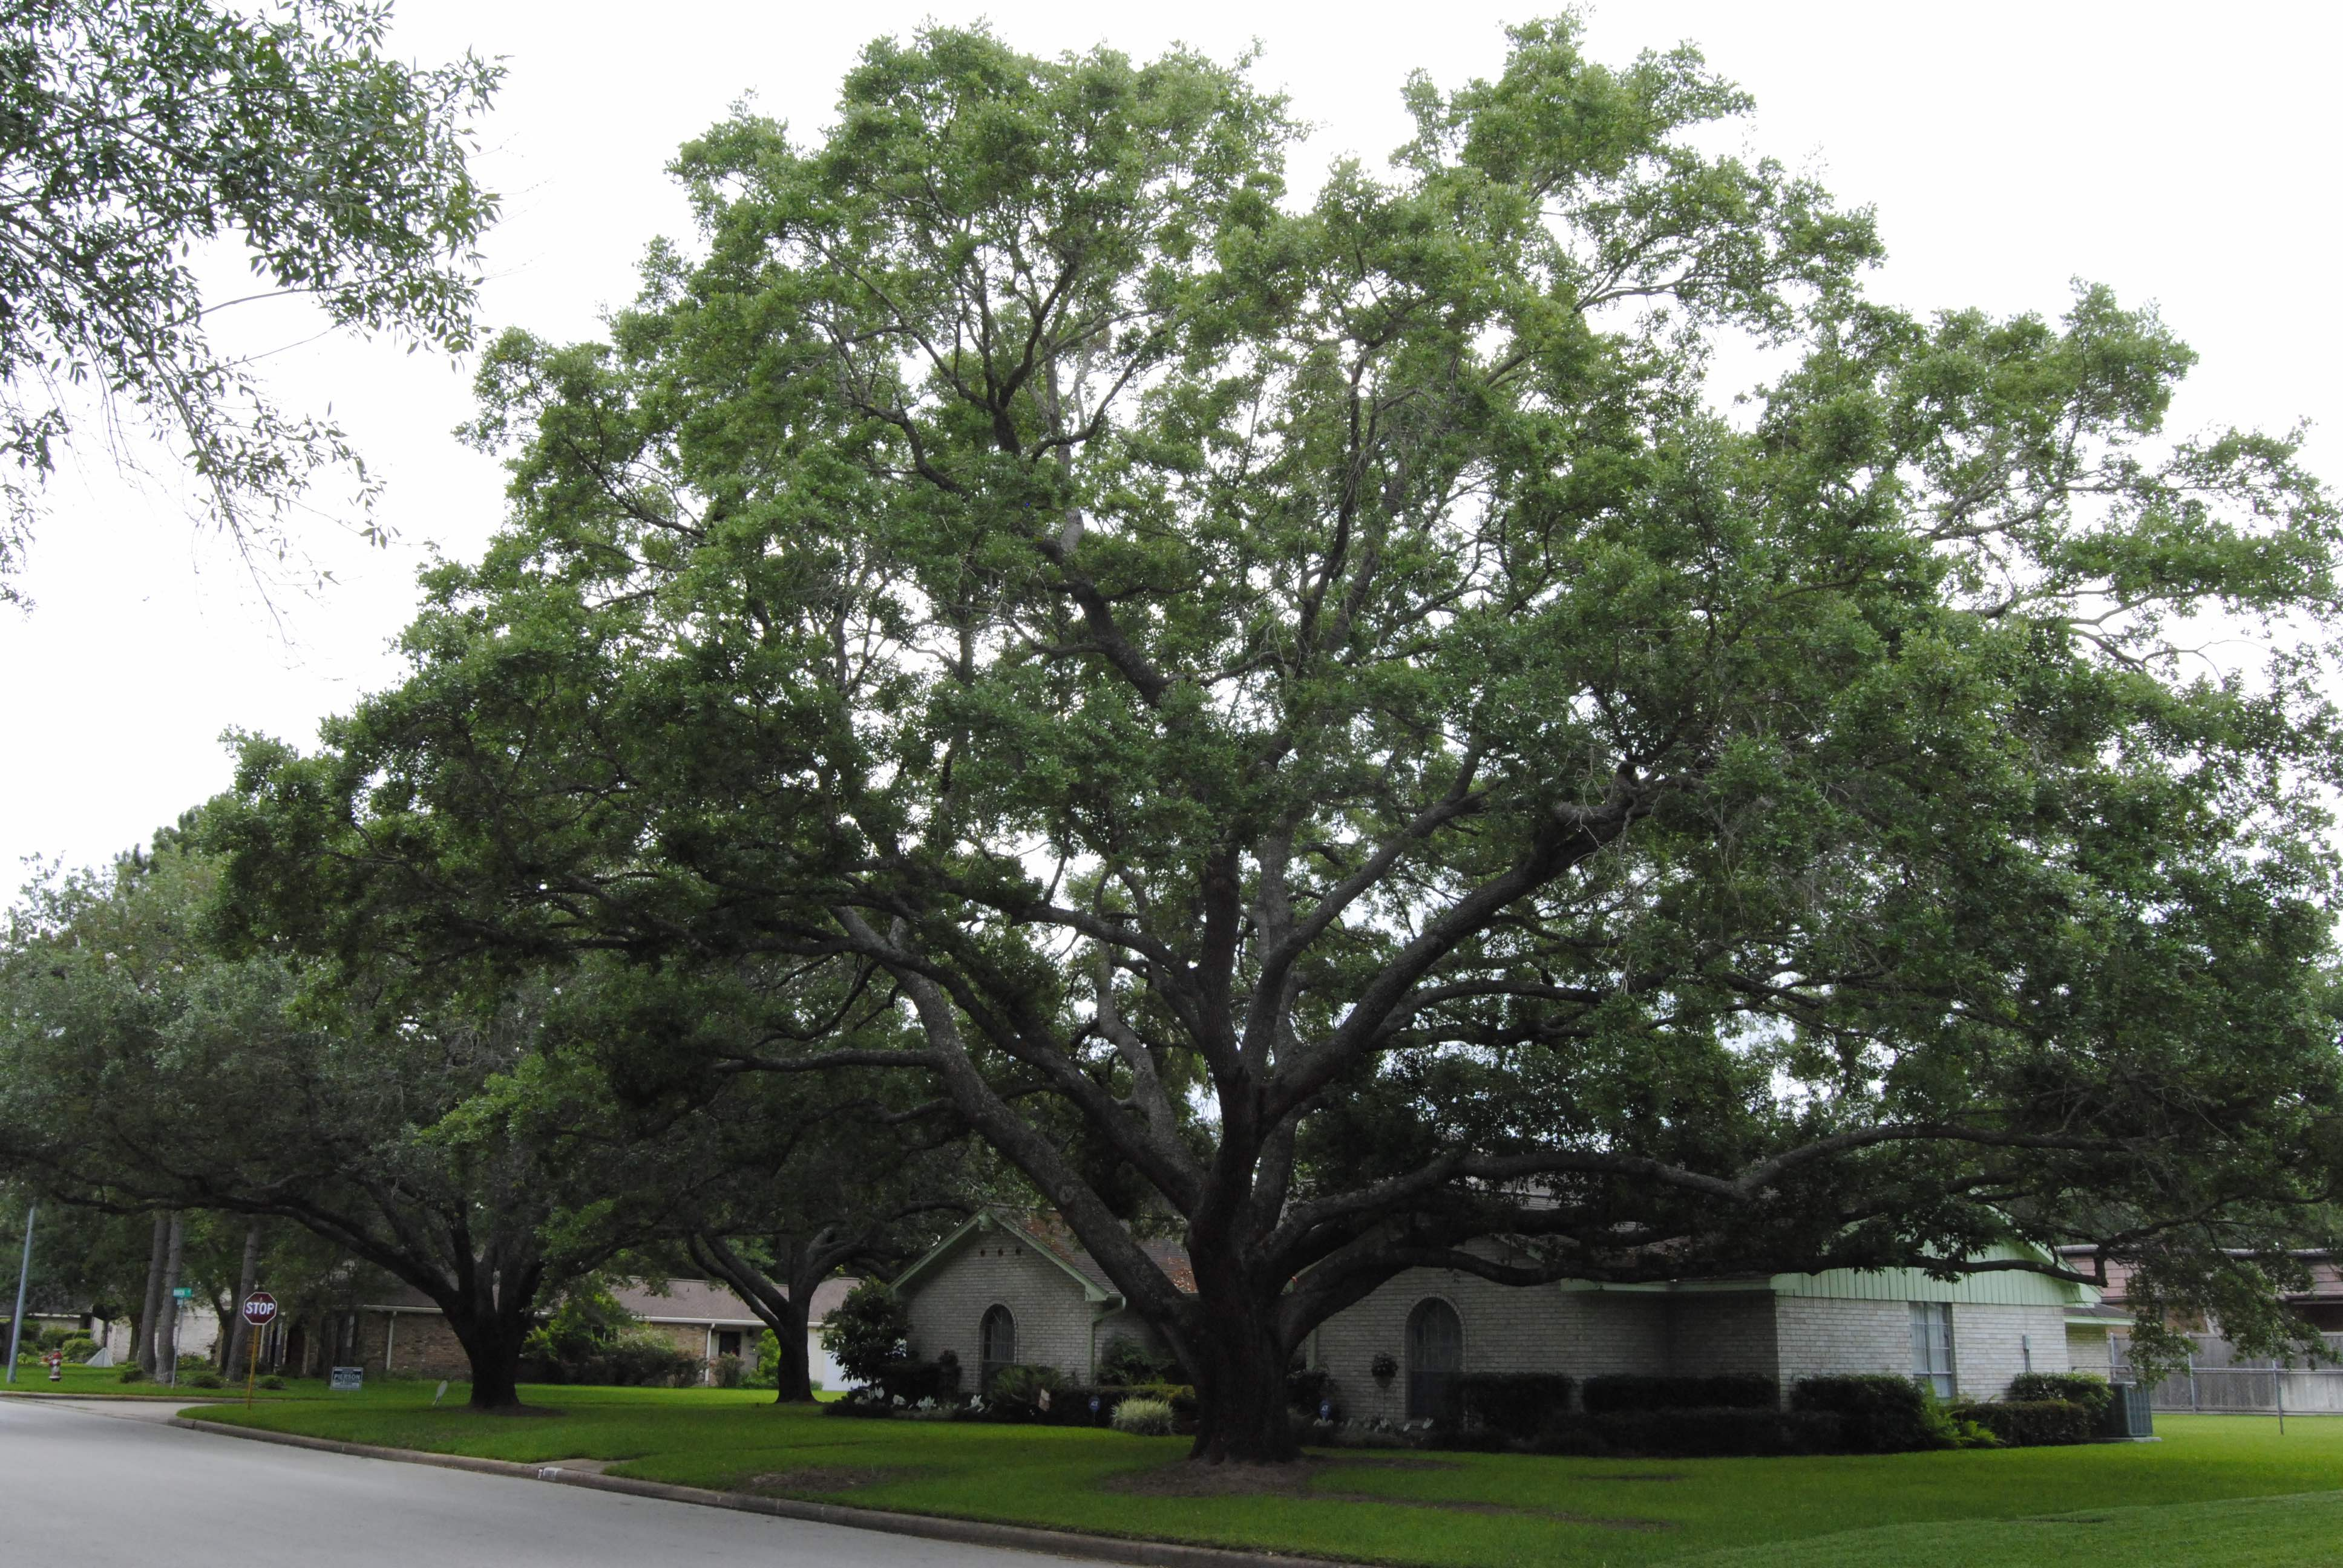 18.	Stand of Heritage Live Oaks